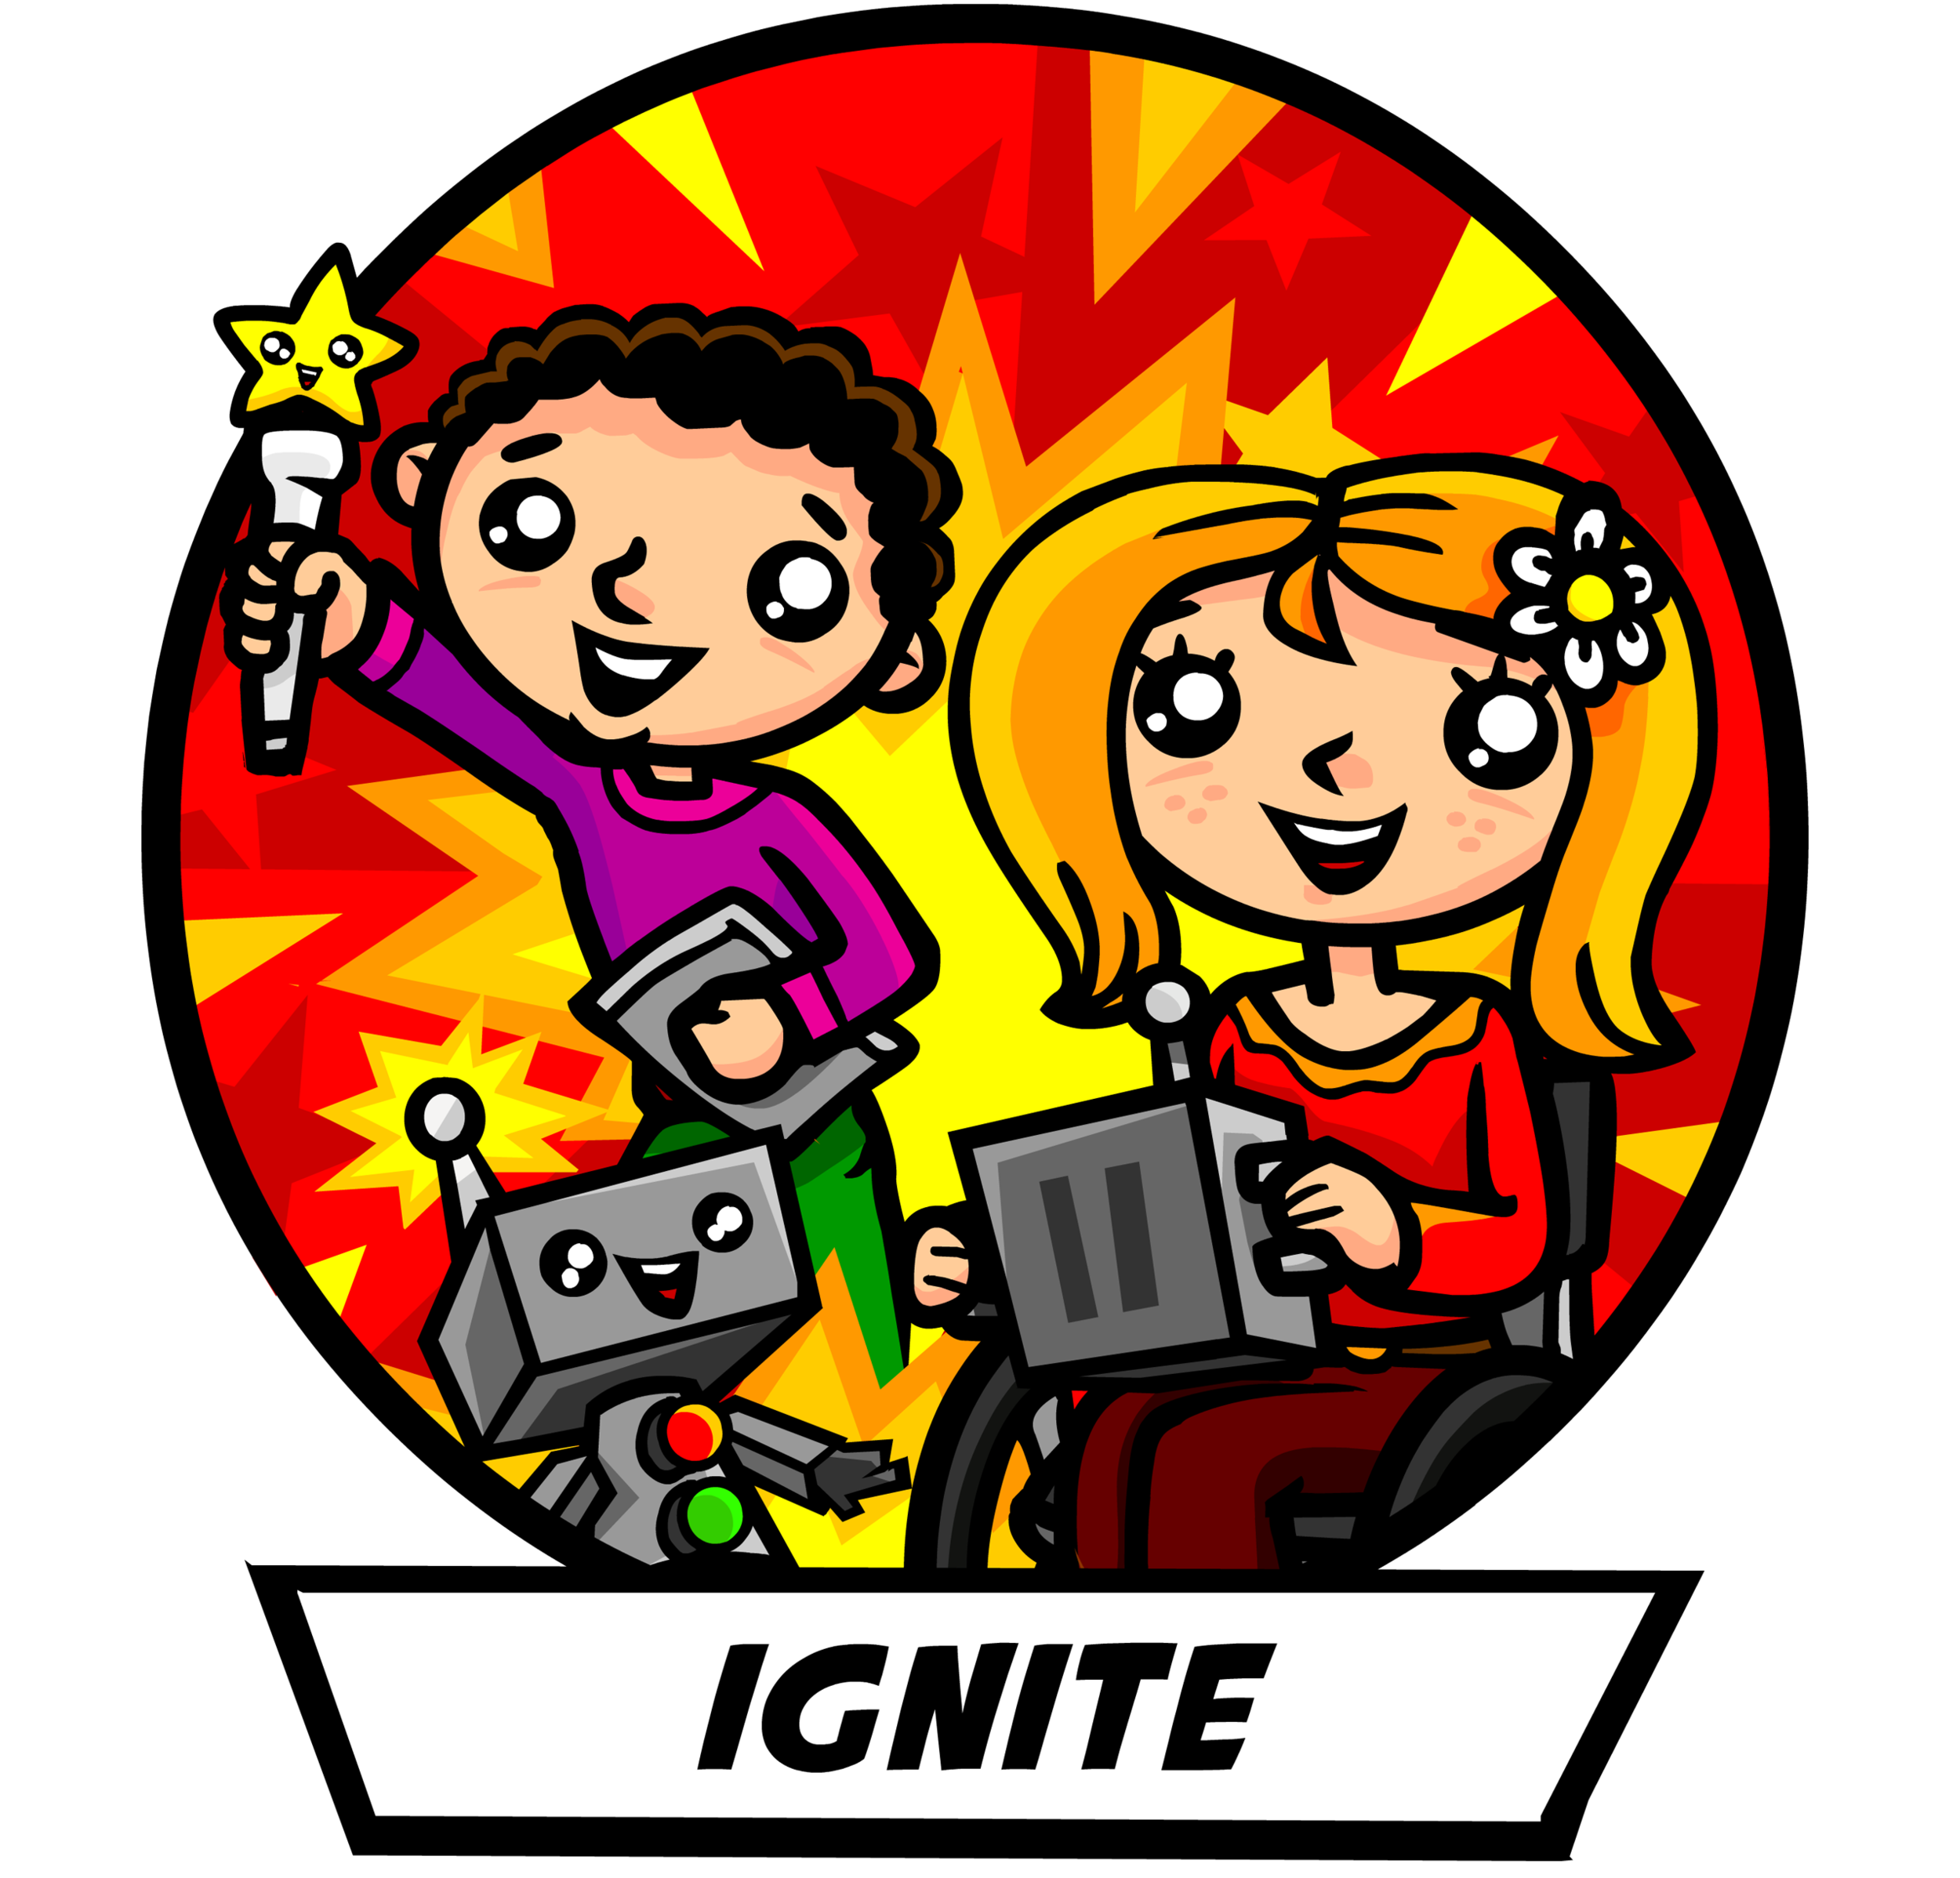 IGNITE is a brand new nonprofit model of education based on more than a year of partnership between the Aim High Foundation and LanguageCraft.Ignite is a cocurriculum program designed and supervised by Speech-Language Pathologists and Applied-Behavior Analysts, that affords kids a chance to participate in fun, custom-tailored activities that allows them to learn and grow while helping others to do the same.   Click here for more information!